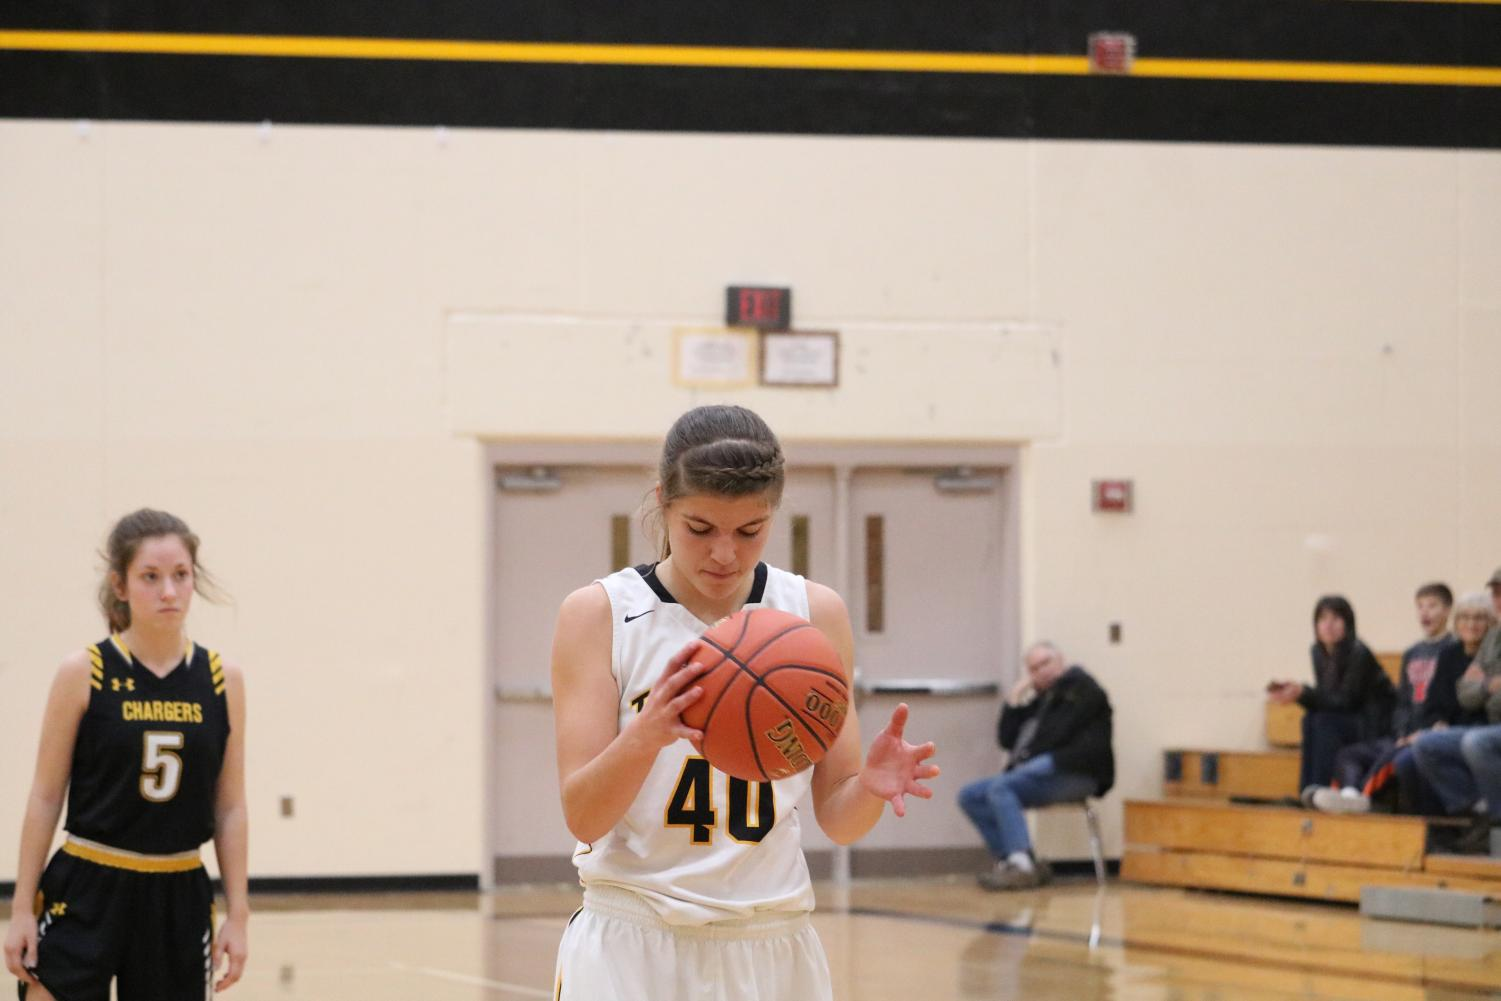 Senior Heidi Williams focuses before shooting a free throw in a scrimmage earlier this season. Against Harlan, Williams had nine boards and three steals.